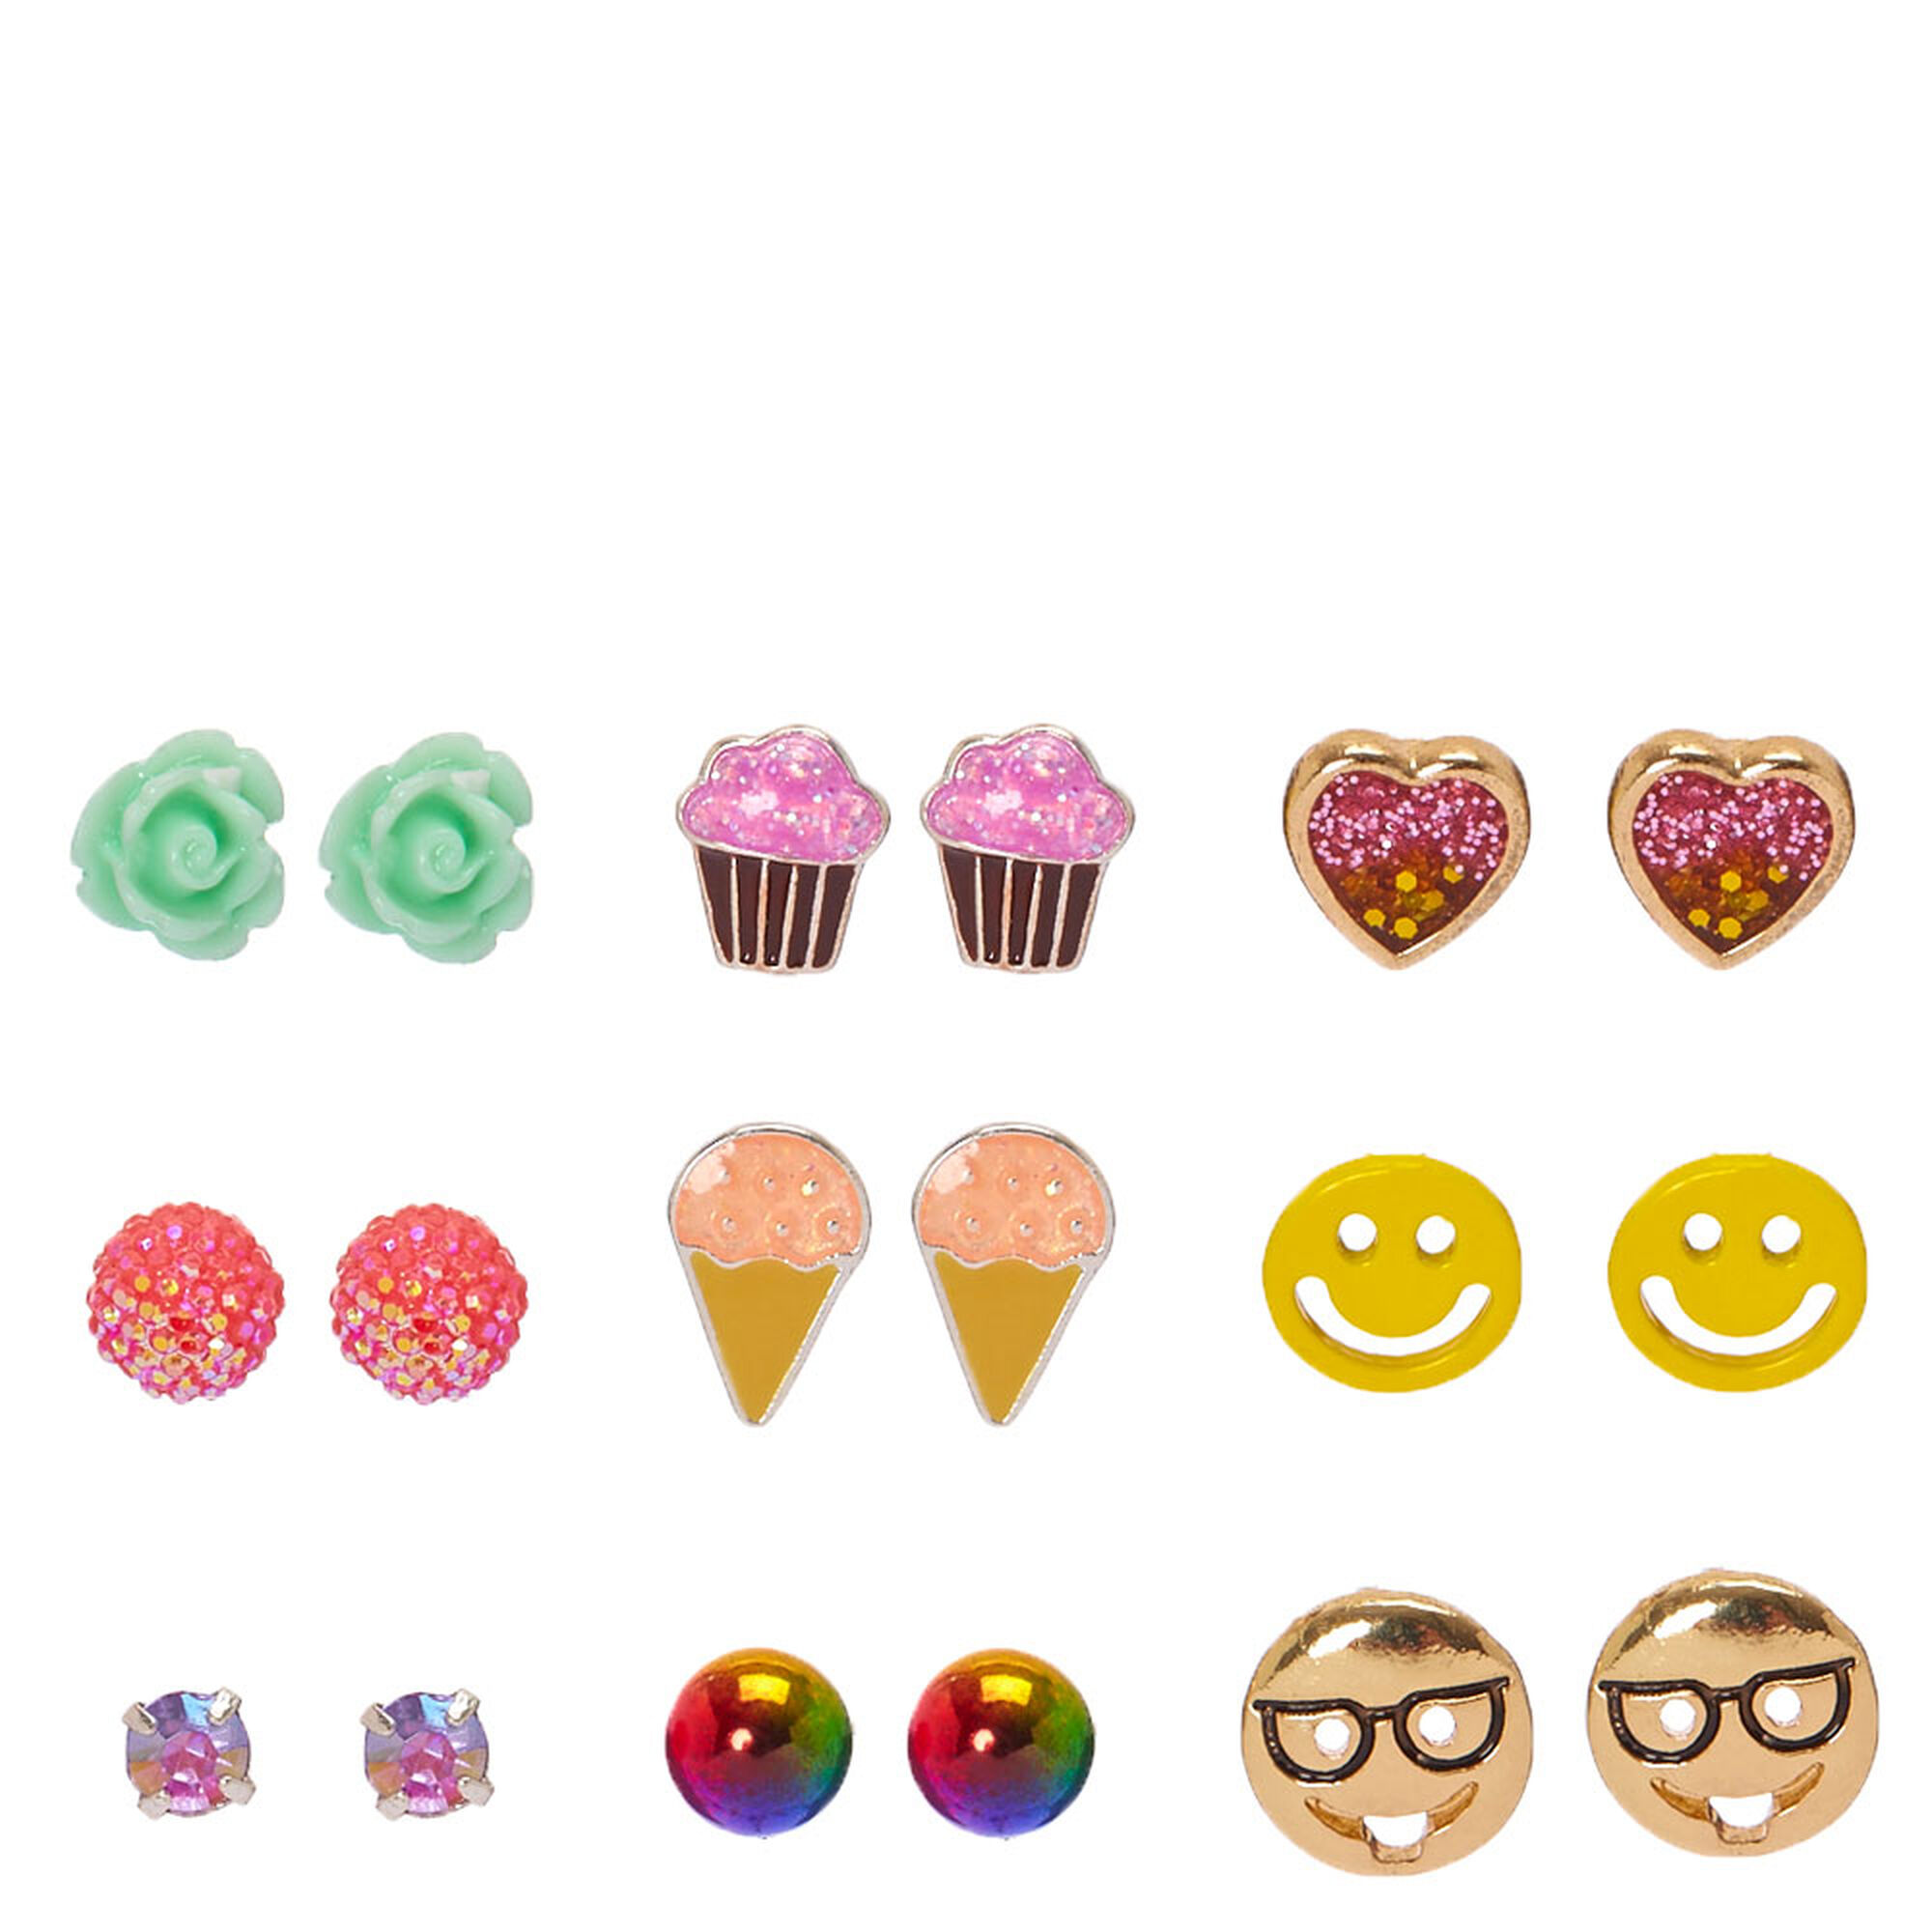 emoji cartoon studs girls product women stud lovely for store plated birthday gold cute earrings designs